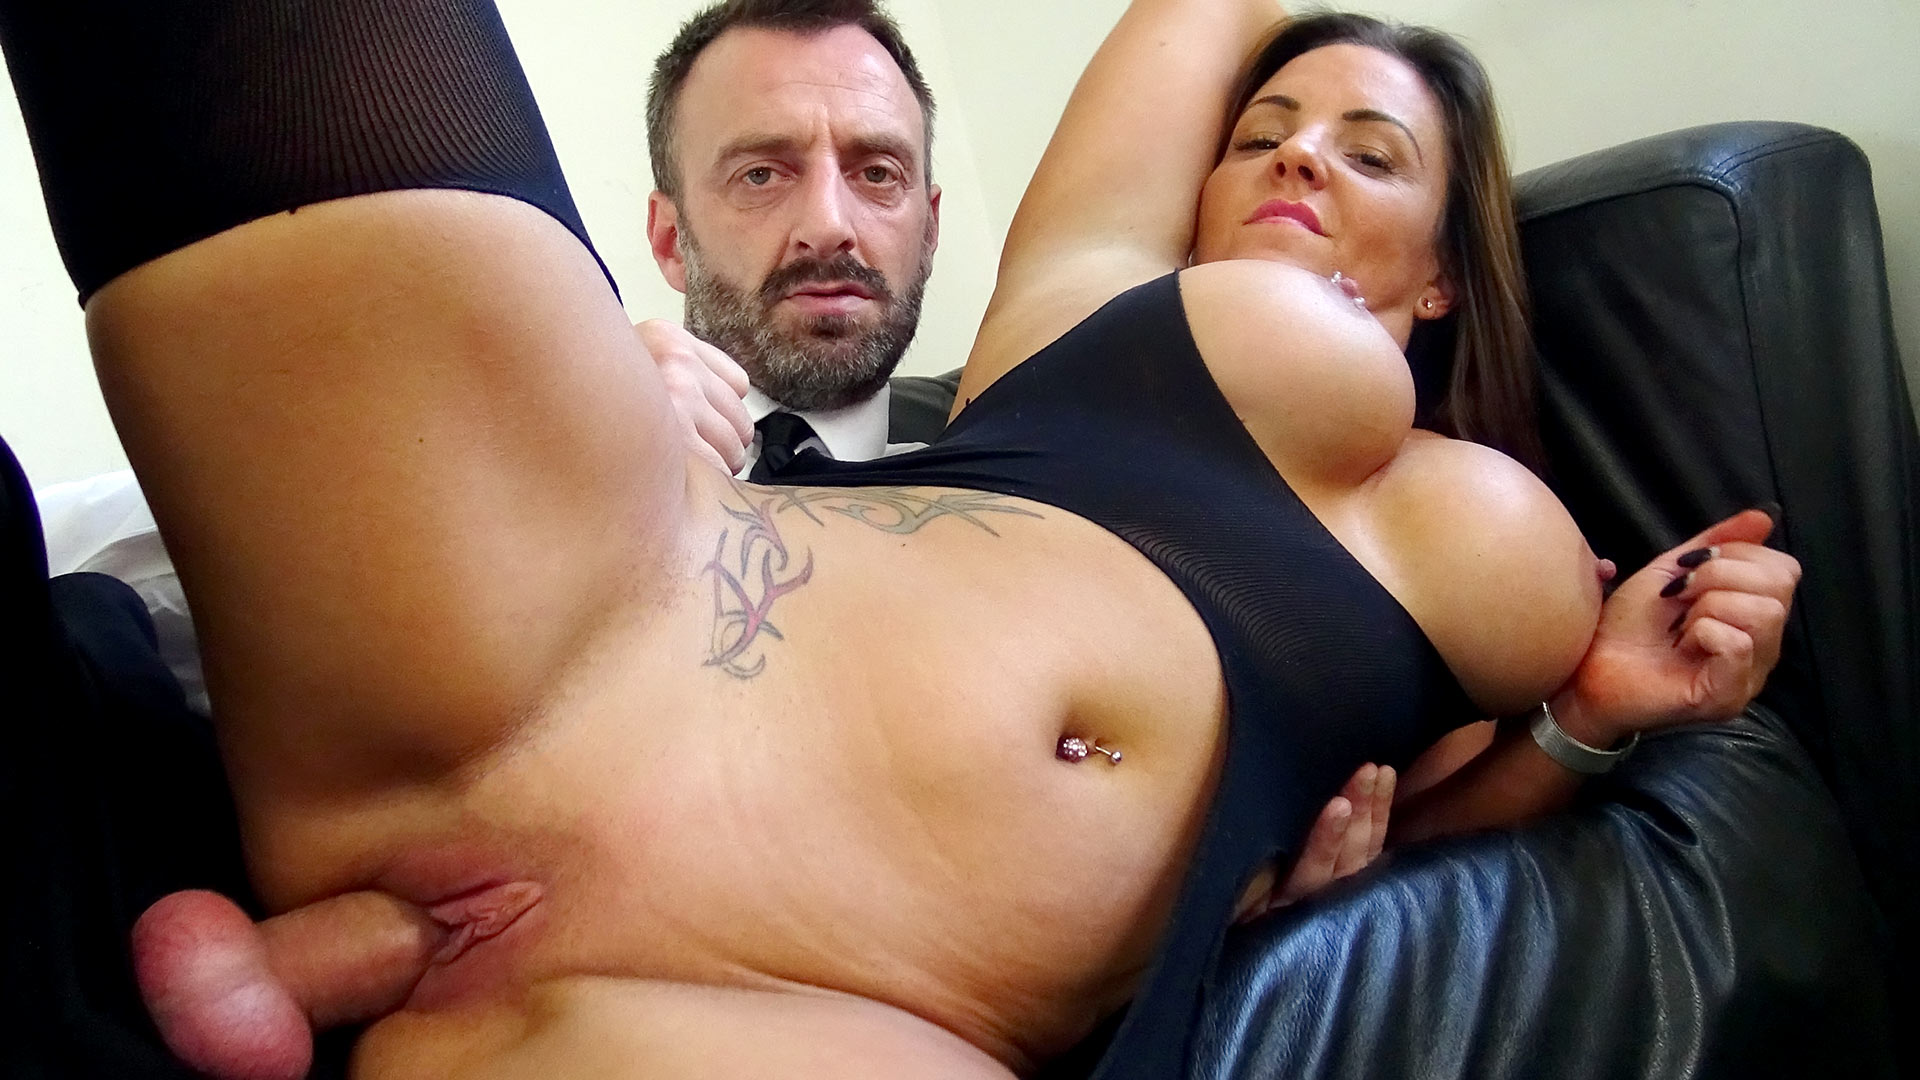 Hot busty milf Sienna gets dominated